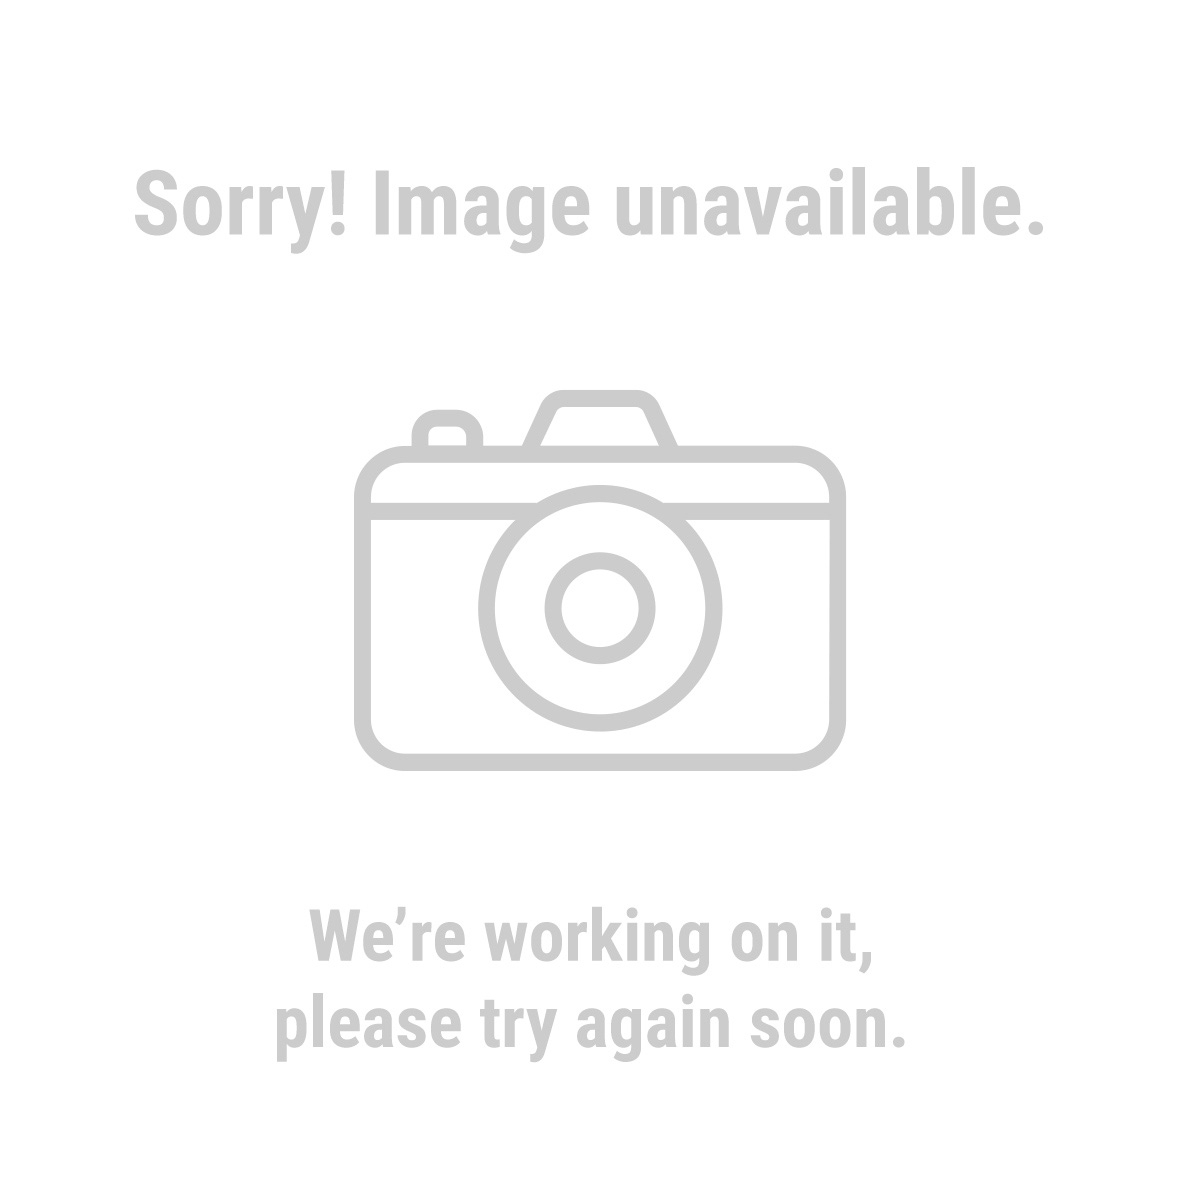 Pittsburgh Professional 69341 3 Piece Curved Jaw Locking Pliers Set